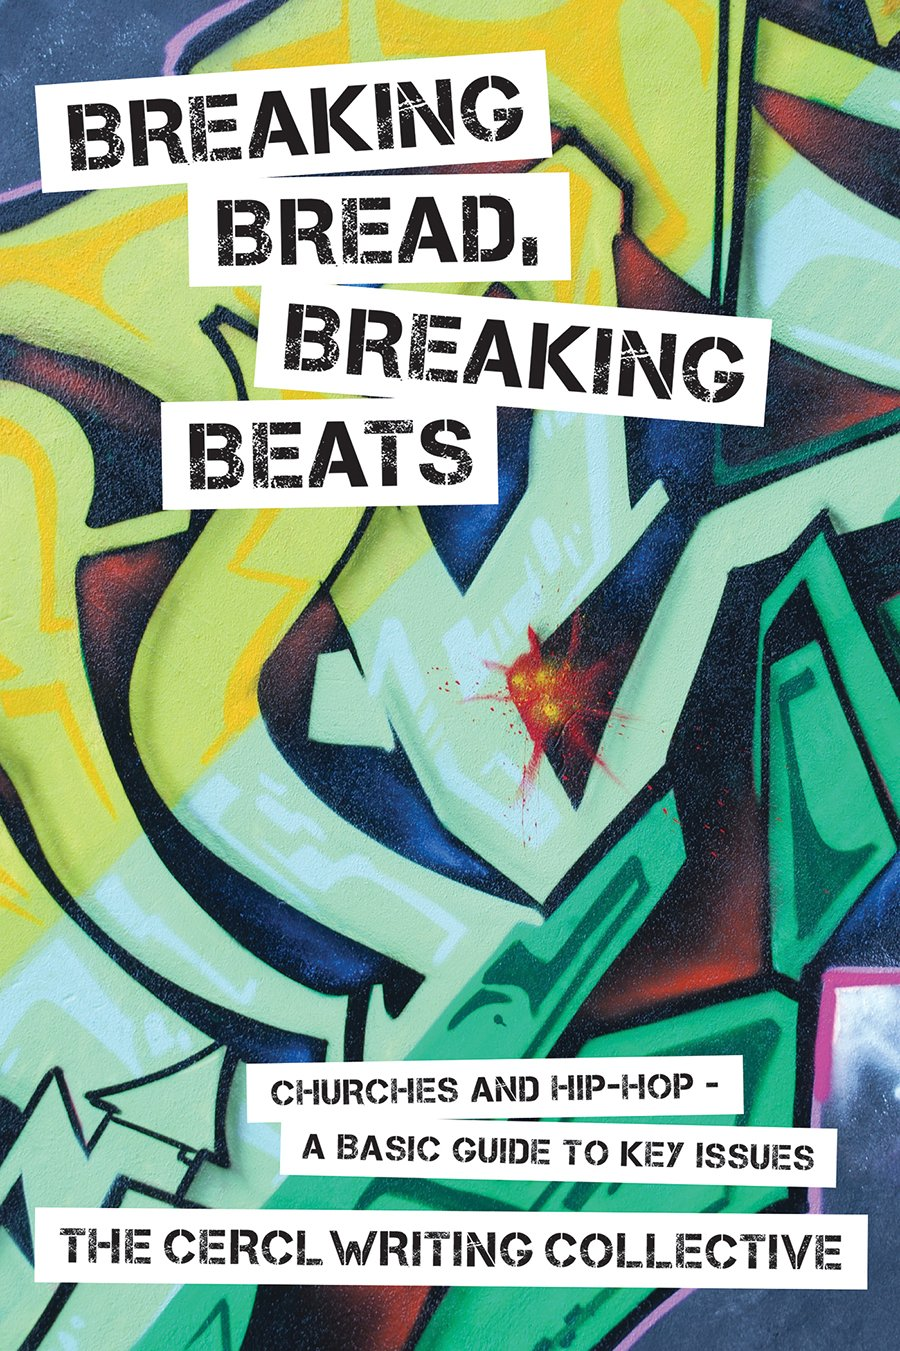 Breaking Bread, Breaking Beats: Churches and Hip-Hop A Basic Guide to Key Issues ebook